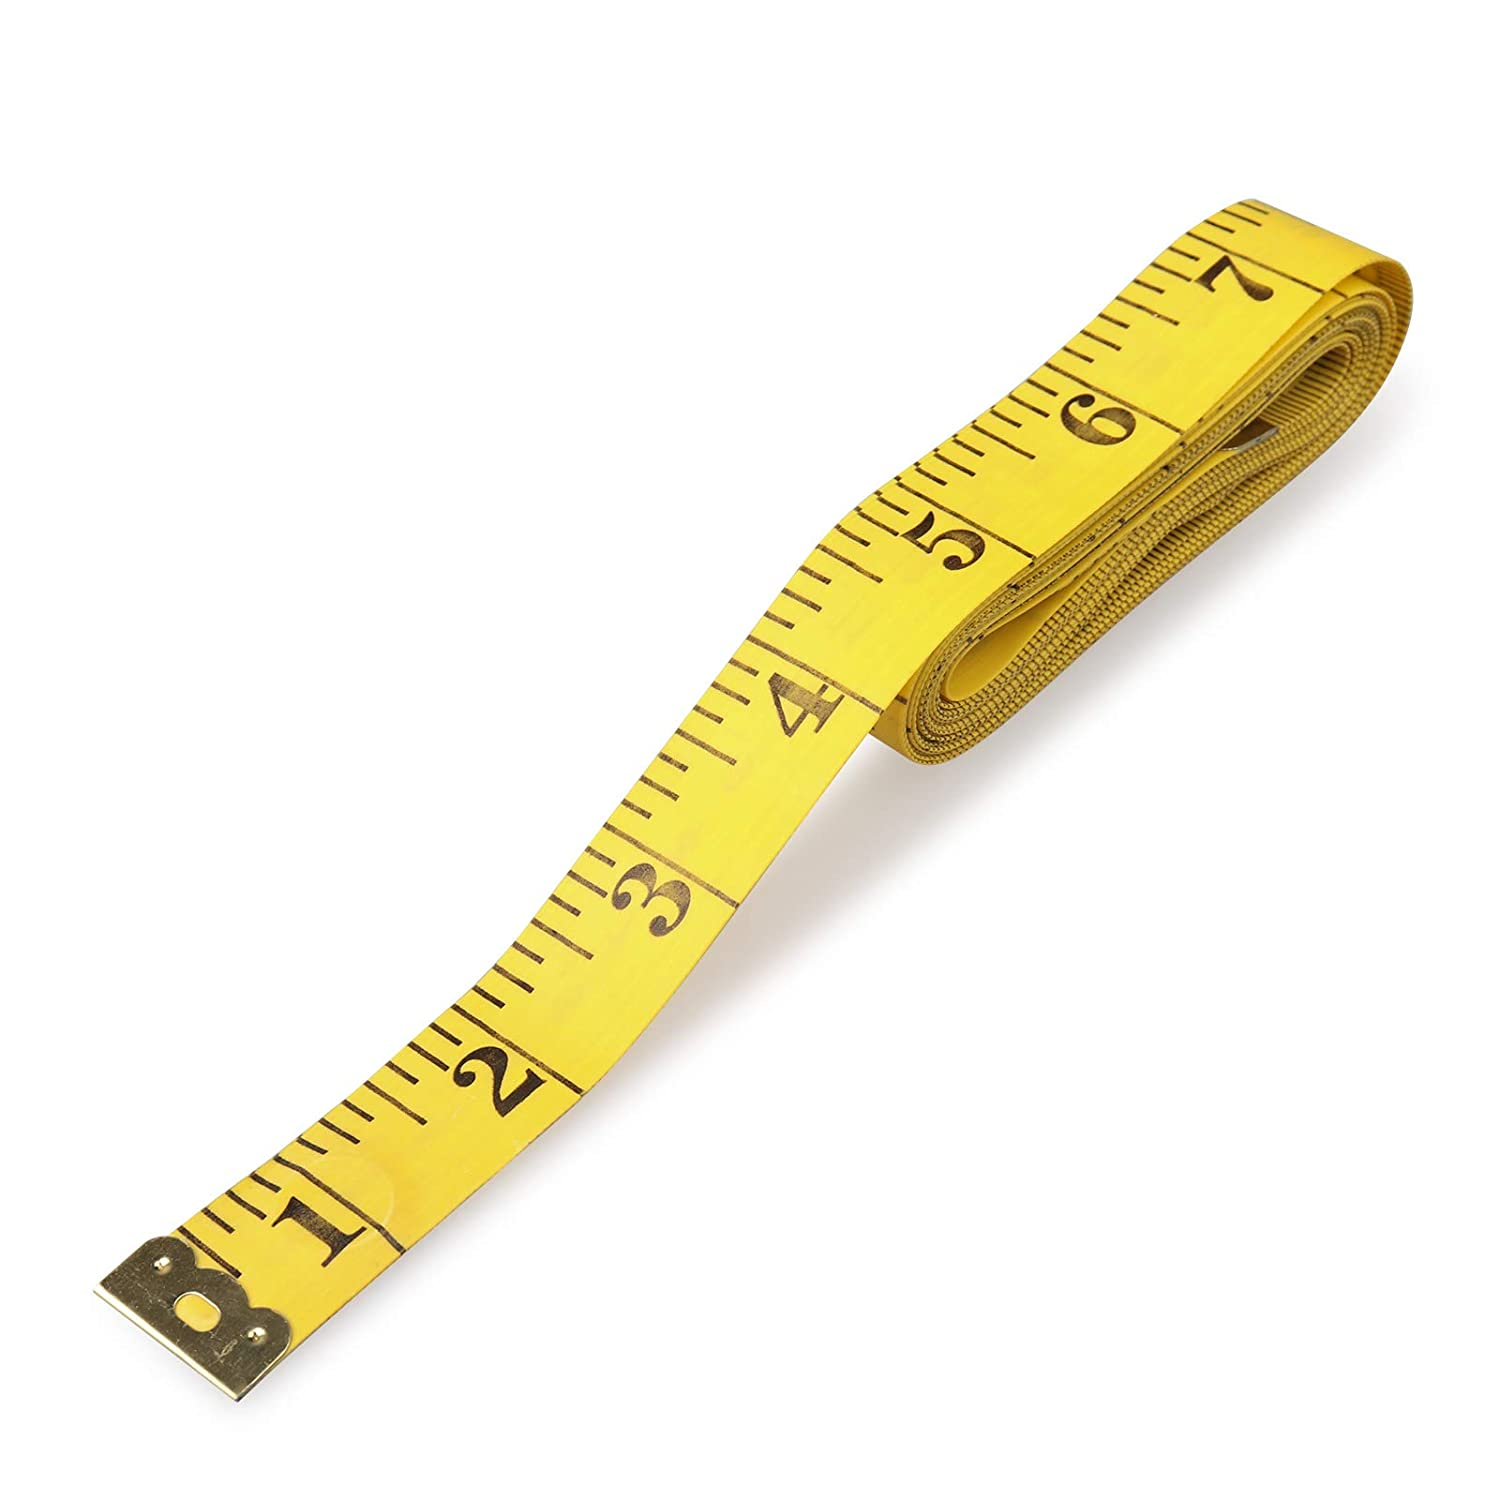 Ehdis 120 Inch 3 Meter Soft Tape Measure with Magnetic Tip Flexible Magnetic Measure Tape for Auto Vinyl Wrap Measuring Tailor Sewing